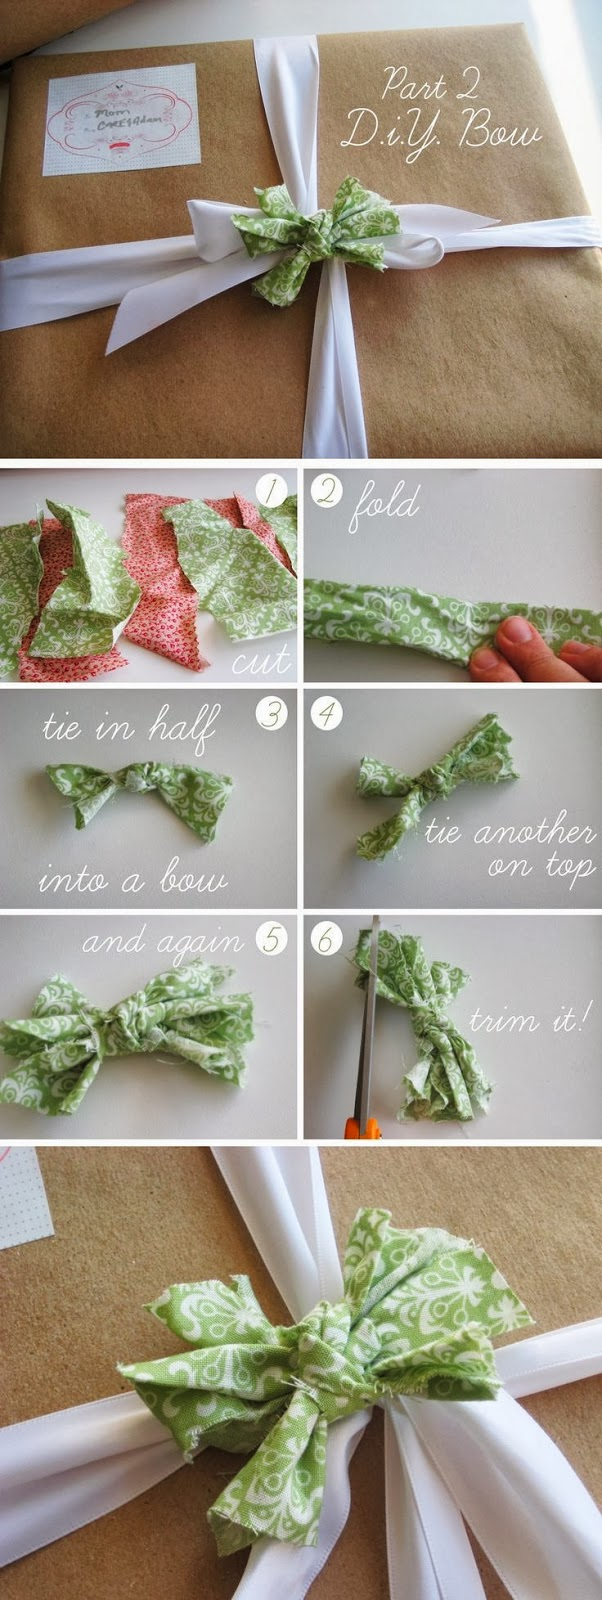 Bow bows do it yourself crafts homemade easy crafts for Diy craft projects easy